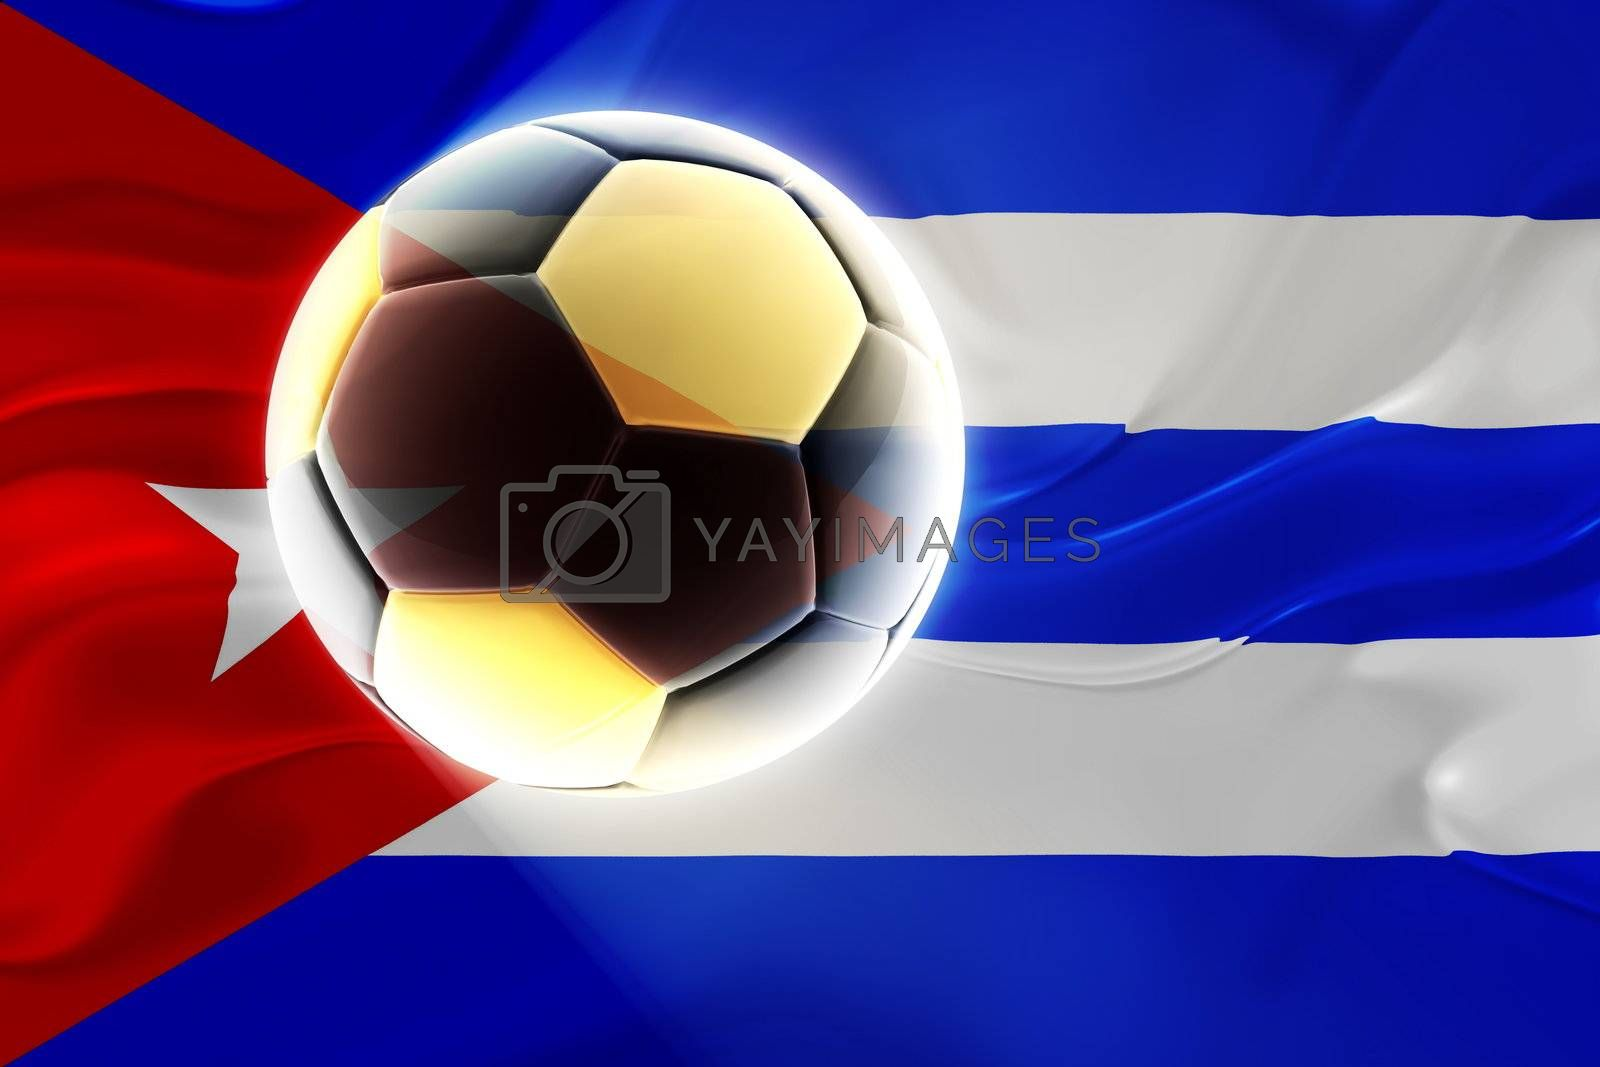 Flag of Cuba, national symbol illustration clipart wavy fabric sports soccer football